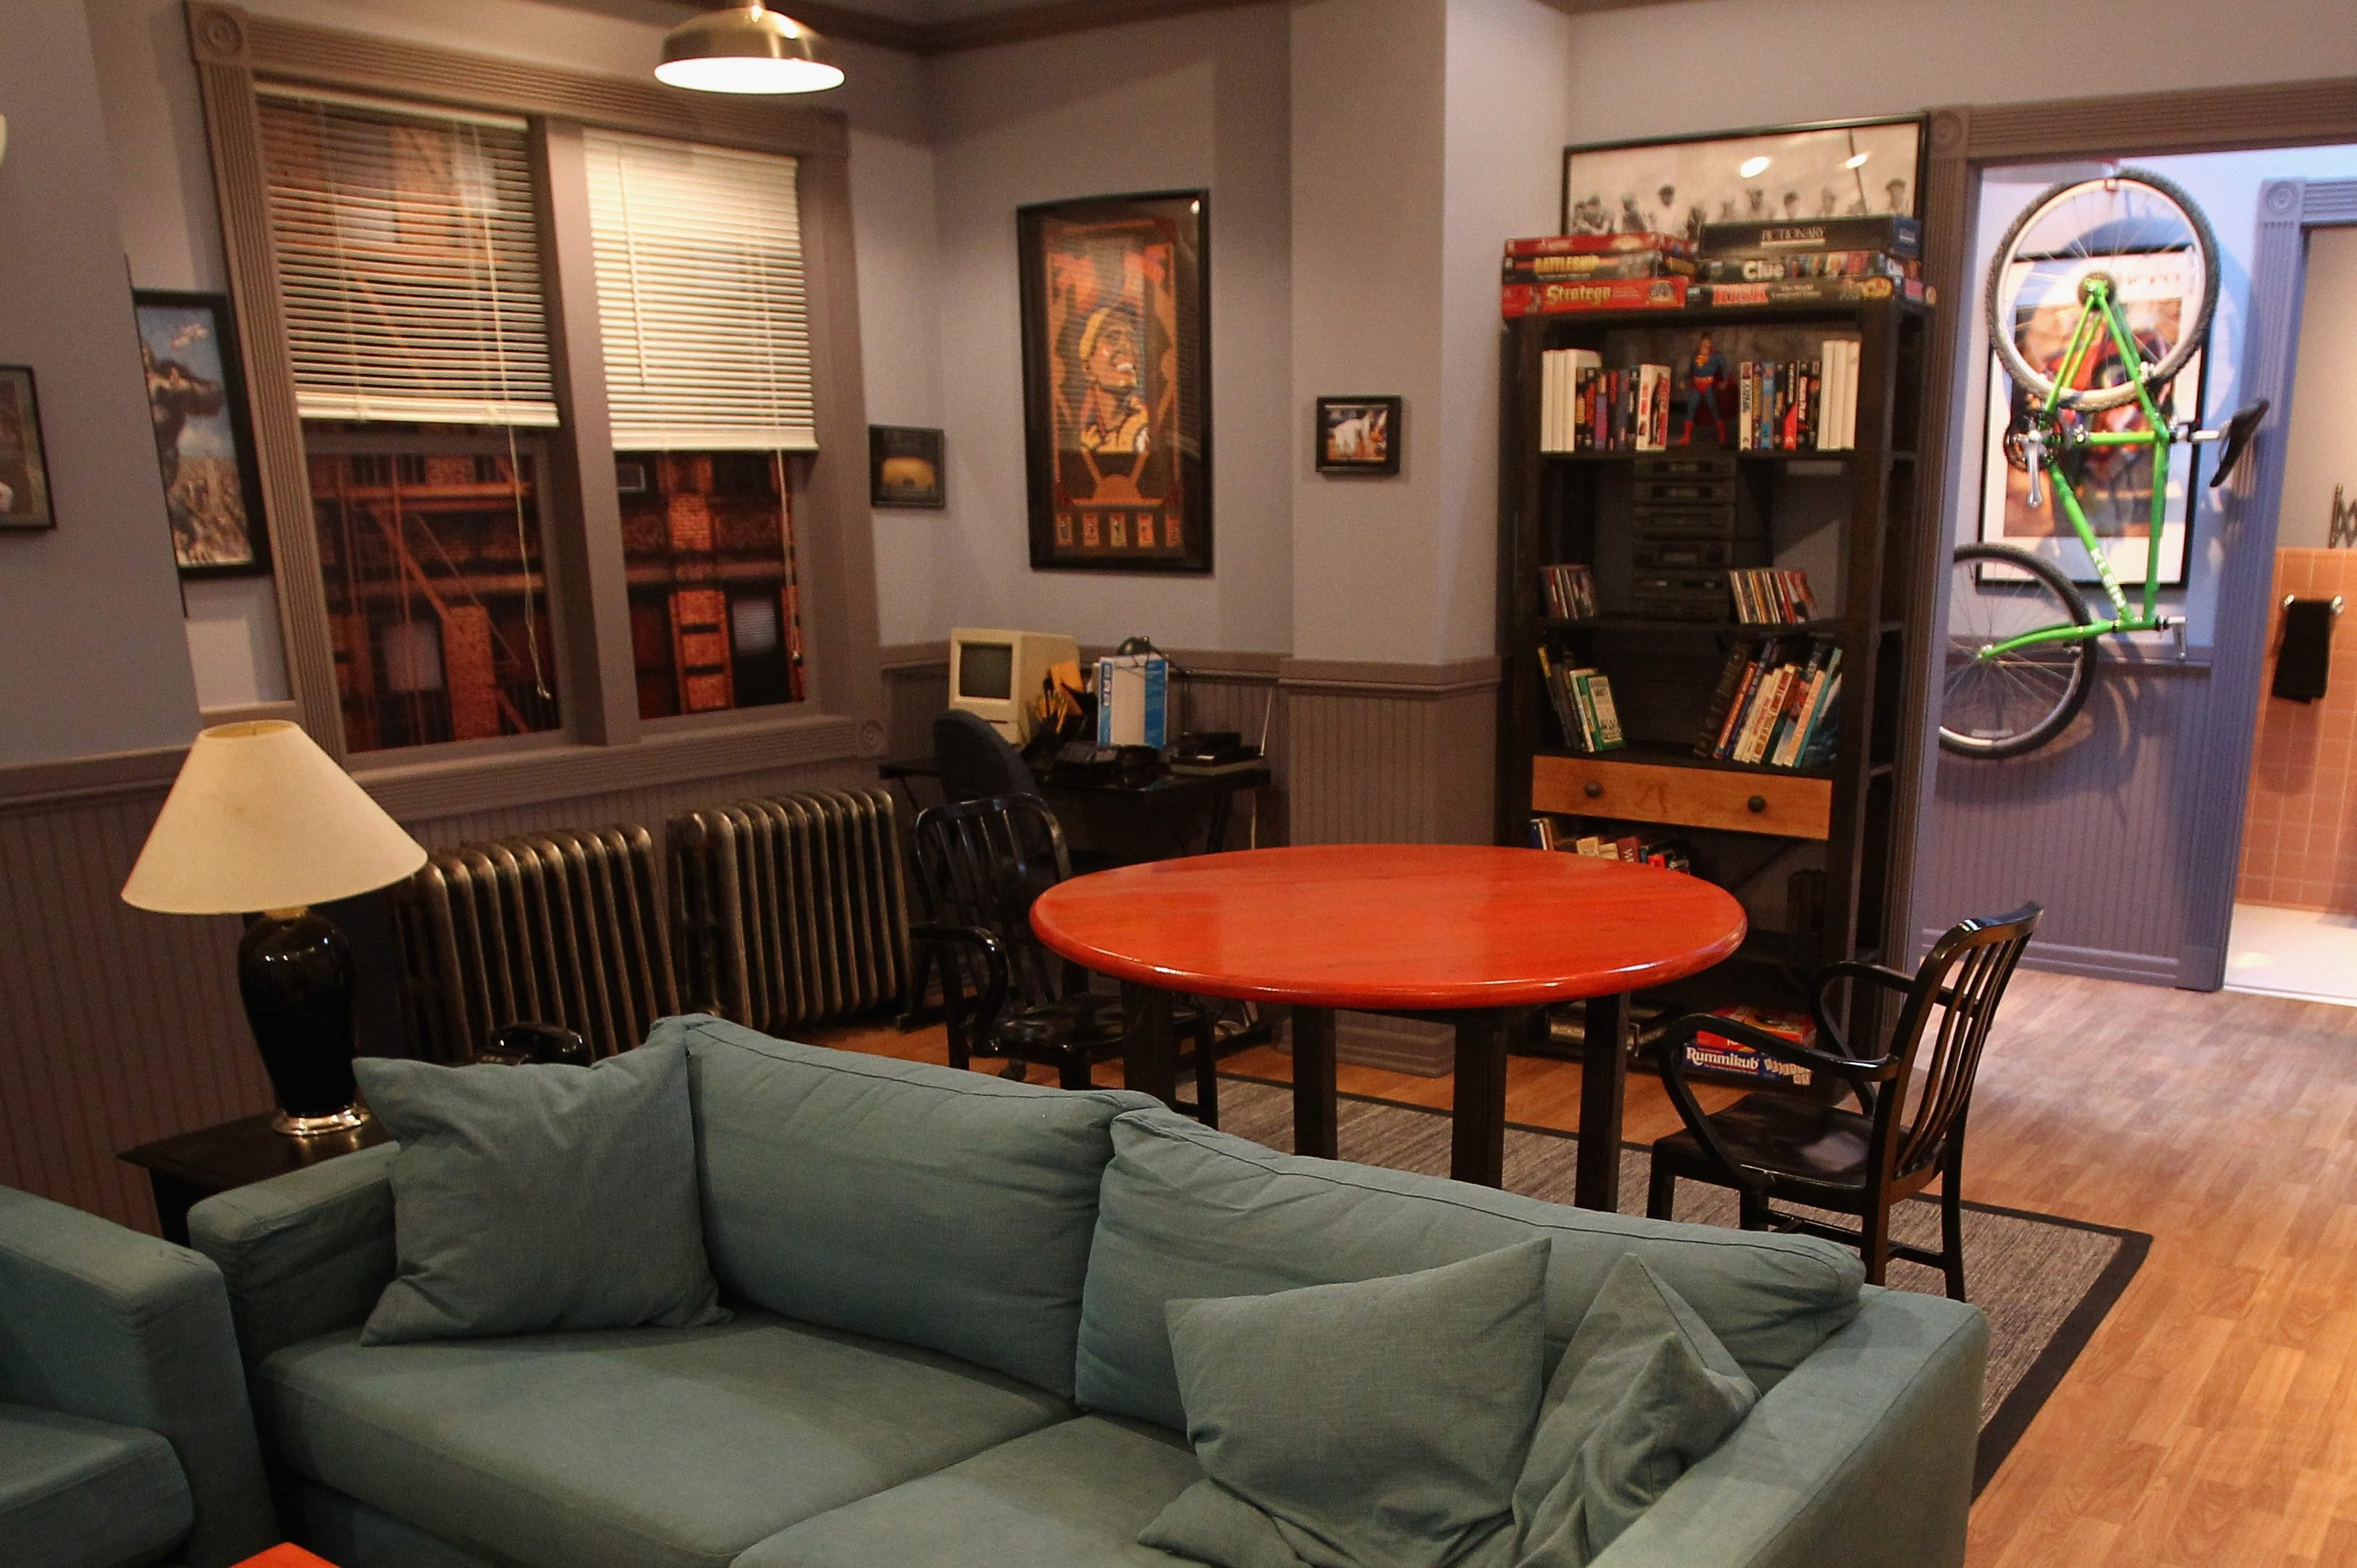 Seinfeld: The Apartment Fan Experience